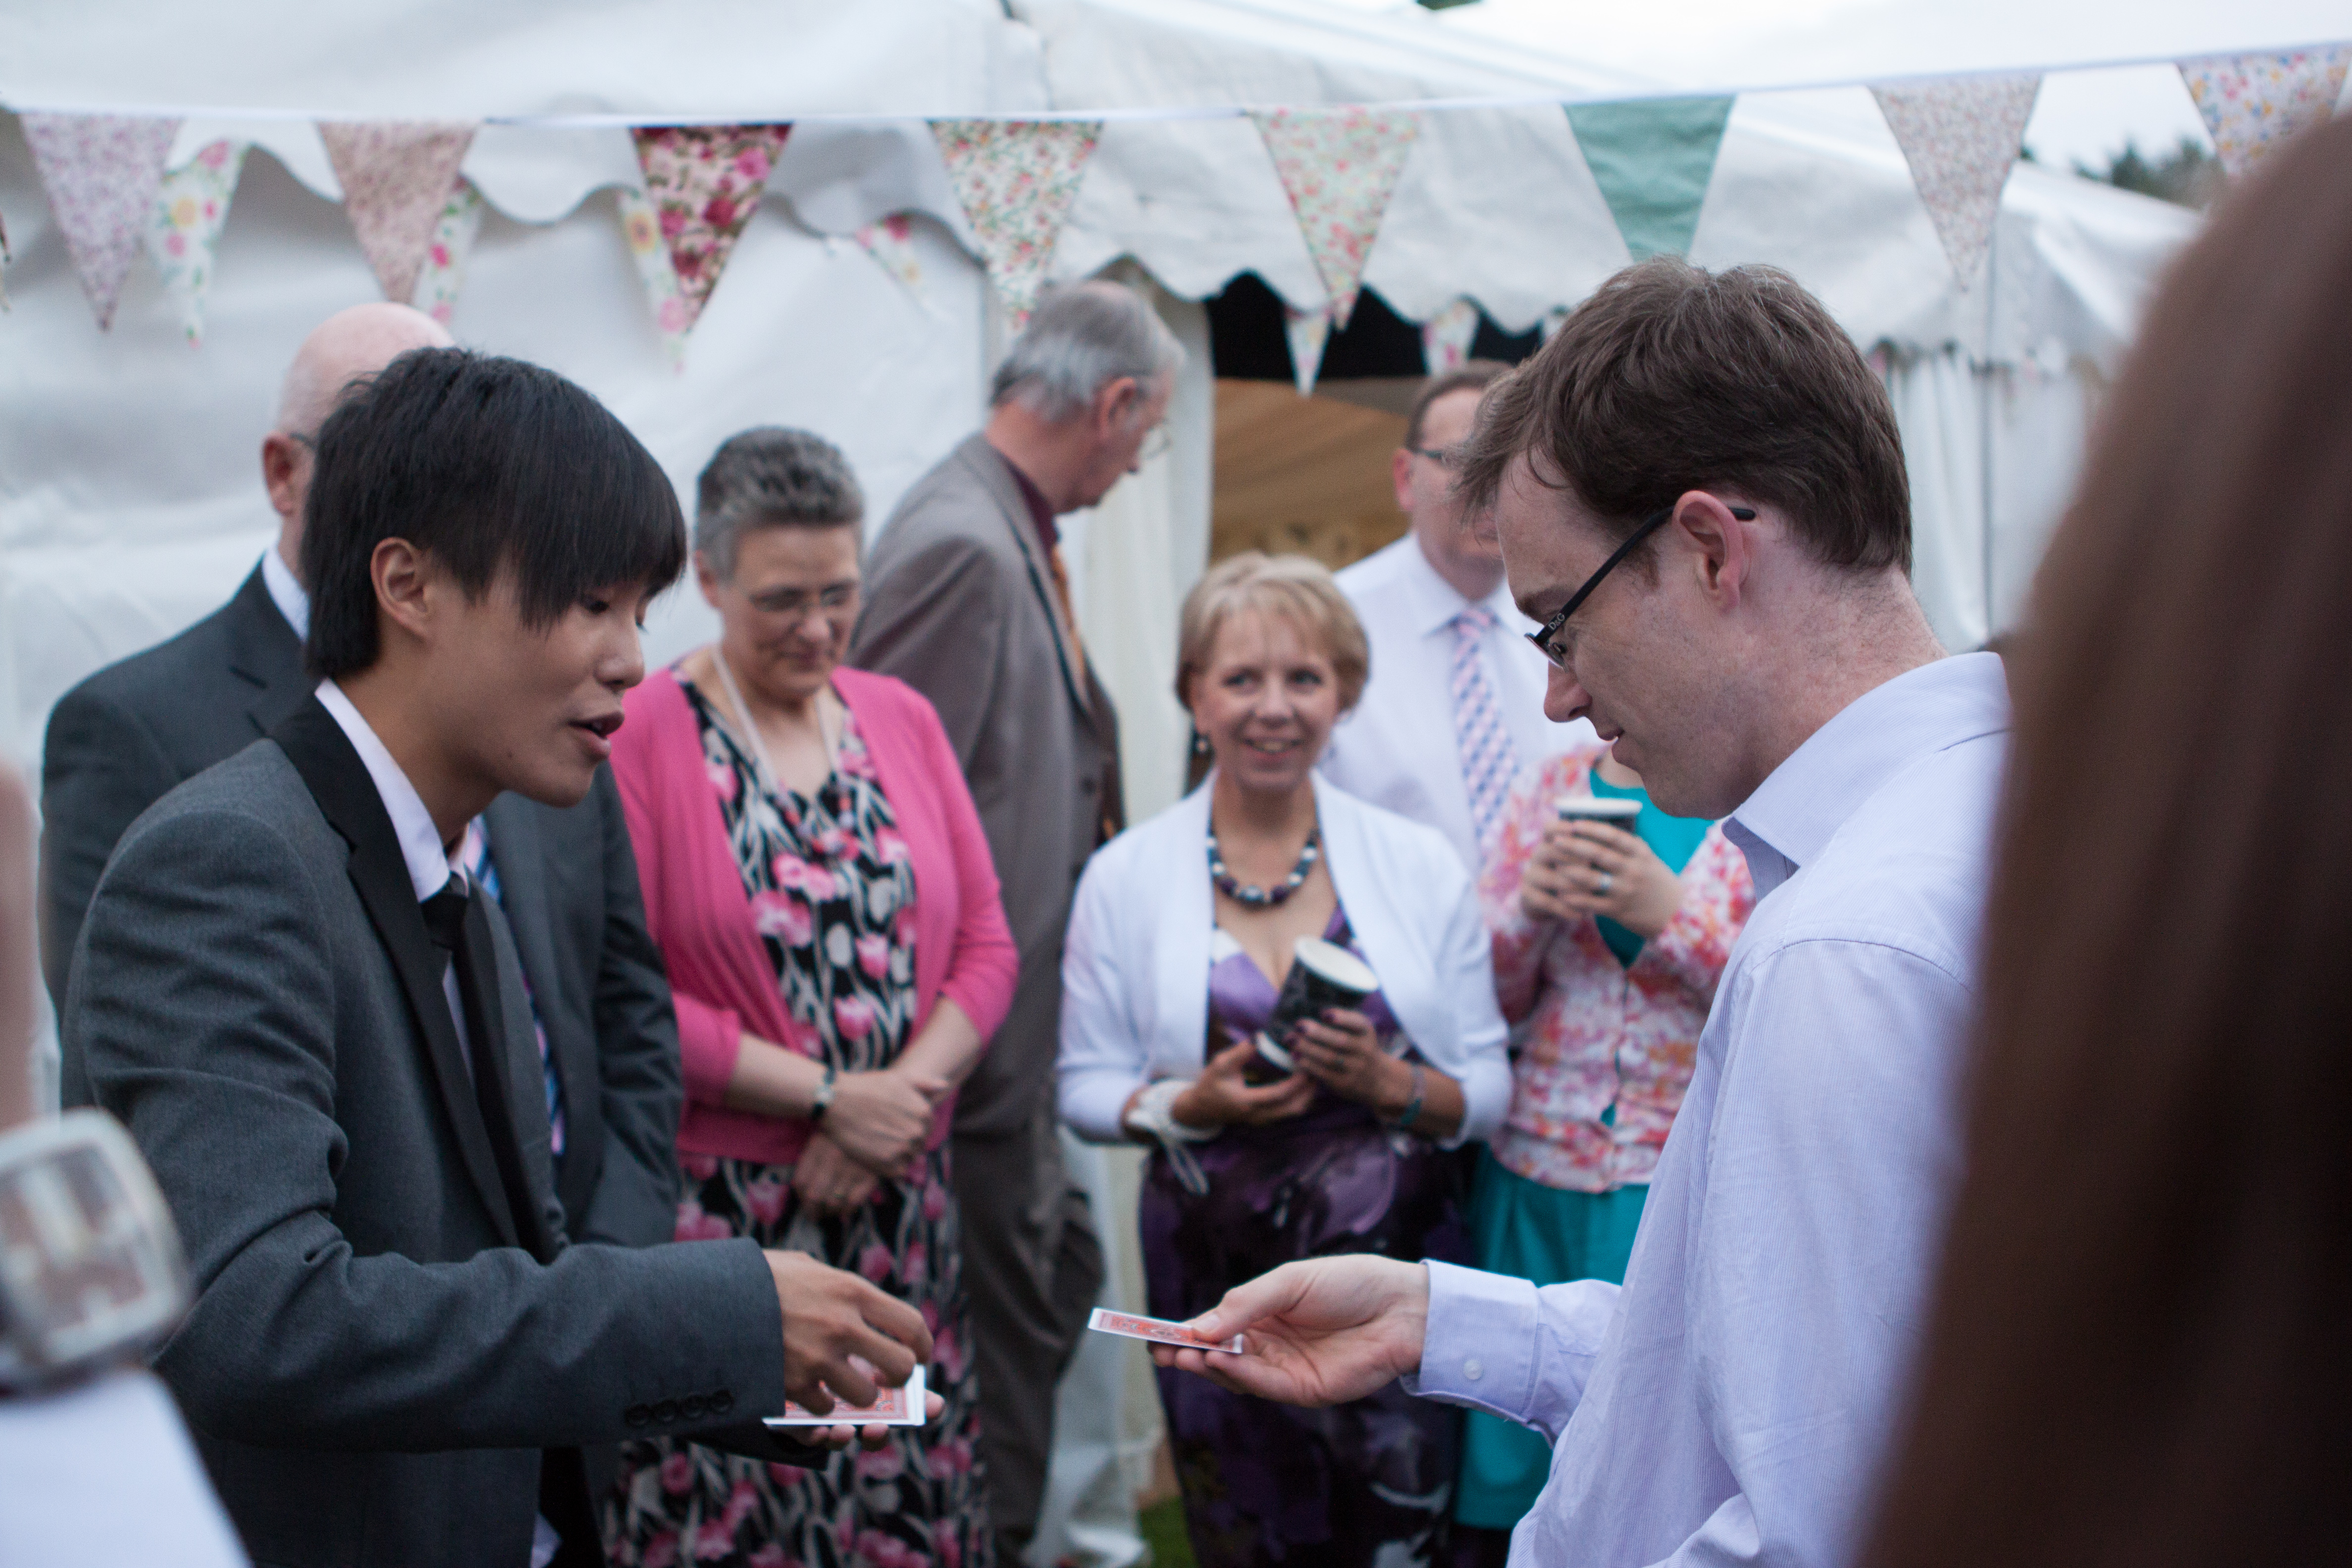 Gary+and+Abi+29th+June+2013-50-2651634336-O.jpg